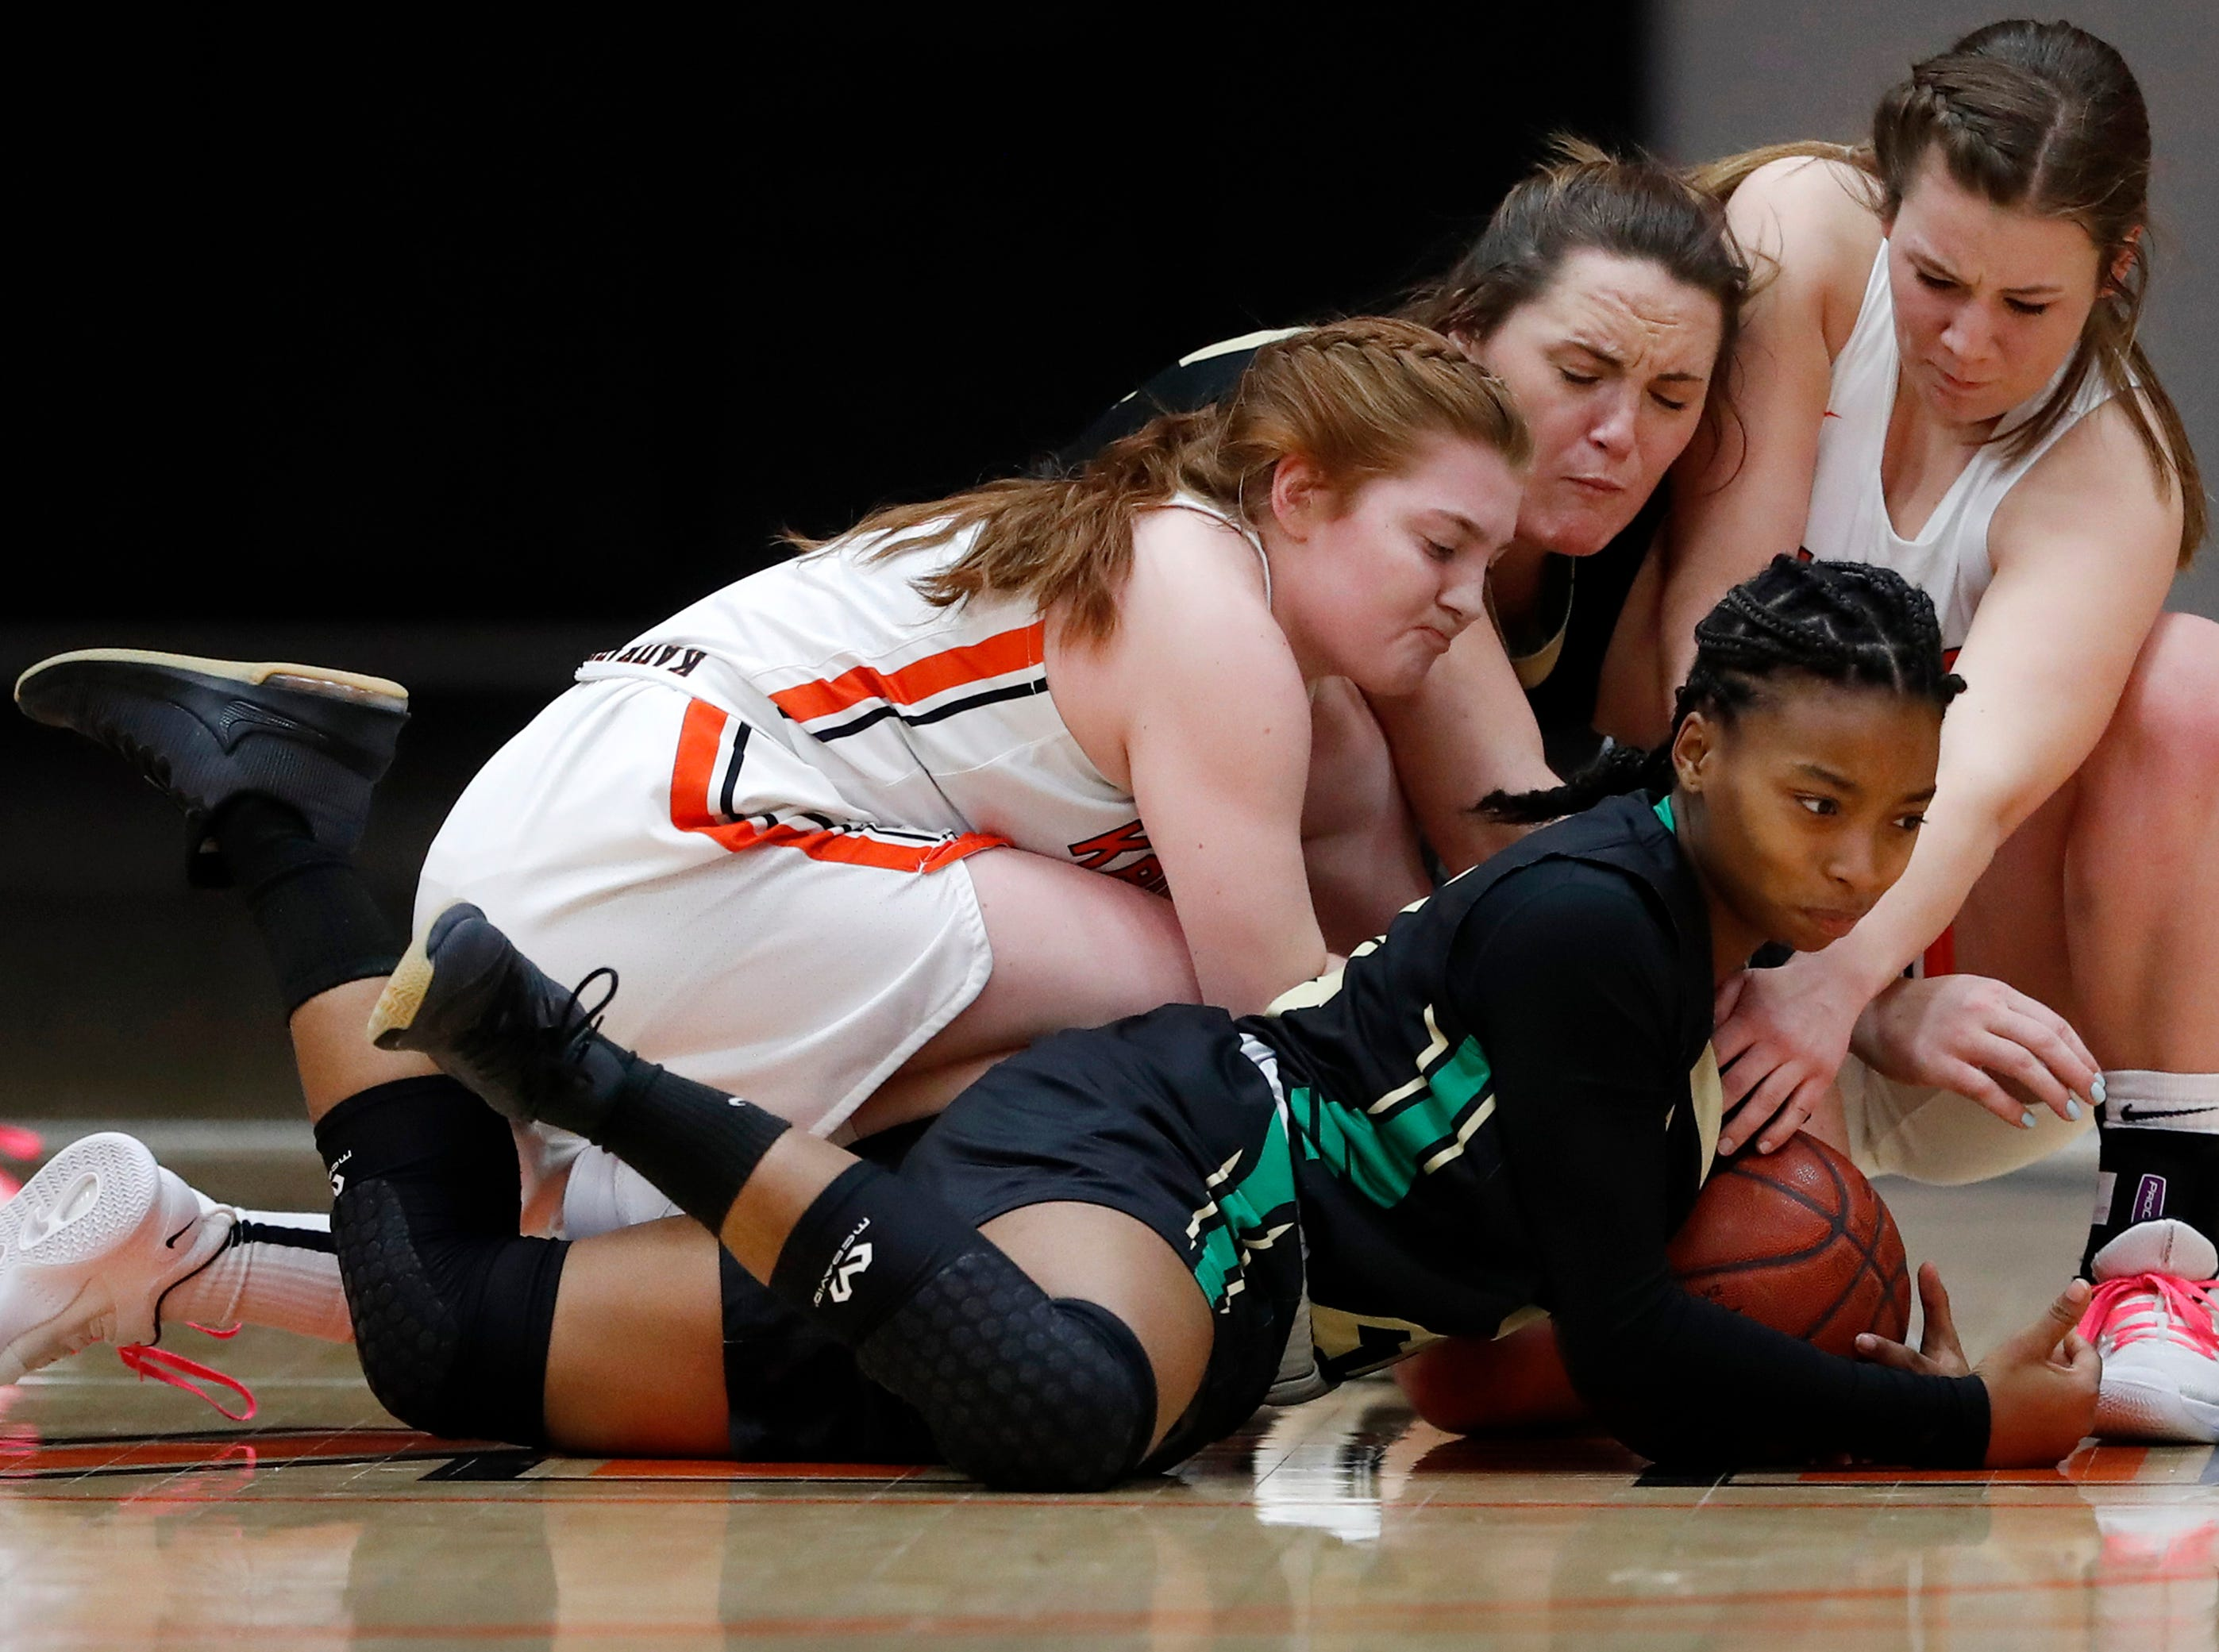 Oshkosh North High School's Nydia Griffin secures the ball on the ground to before passing it to a teammate to keep it from Kaukauna High School's Lindsey Laflen (left) and GAbby Djupstrom (right) Tuesday, Feb. 5, 2019, in Kaukauna, Wis. Danny Damiani/USA TODAY NETWORK-Wisconsin